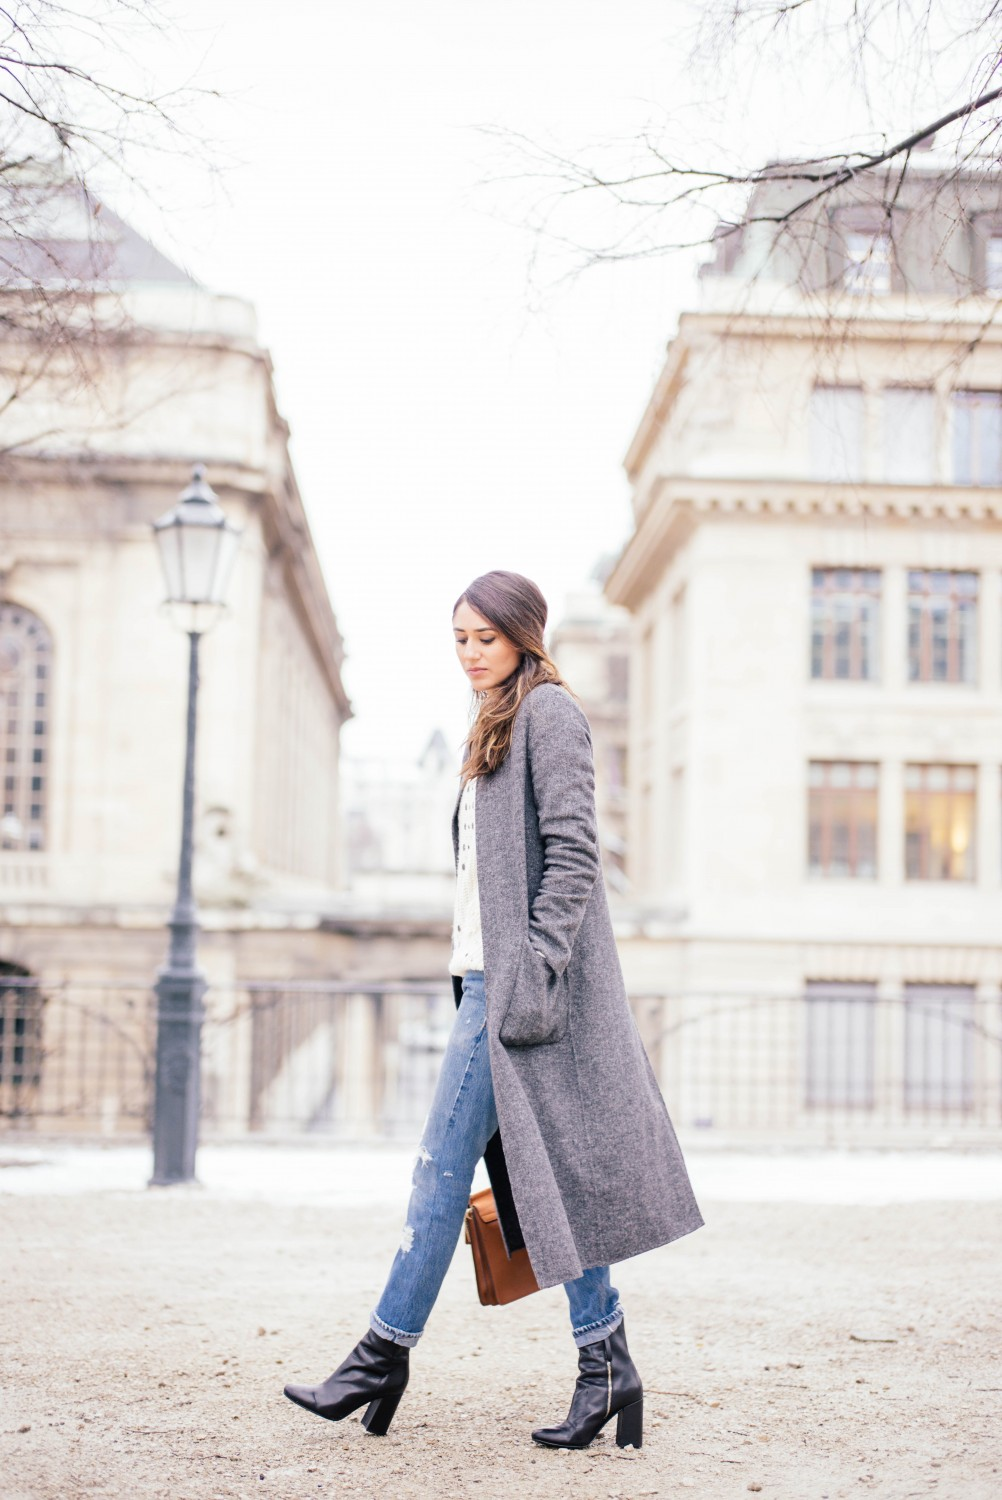 Soraya Bakhtiar demonstrates another cute winter look; pairing rolled jeans with heeled leather boots and a classy marl grey maxi coat. This style will also work with flats if you desire a more casual look. Jeans: Redone, Coat: Zara, Sweater: Topshop, Bag: Chloe.